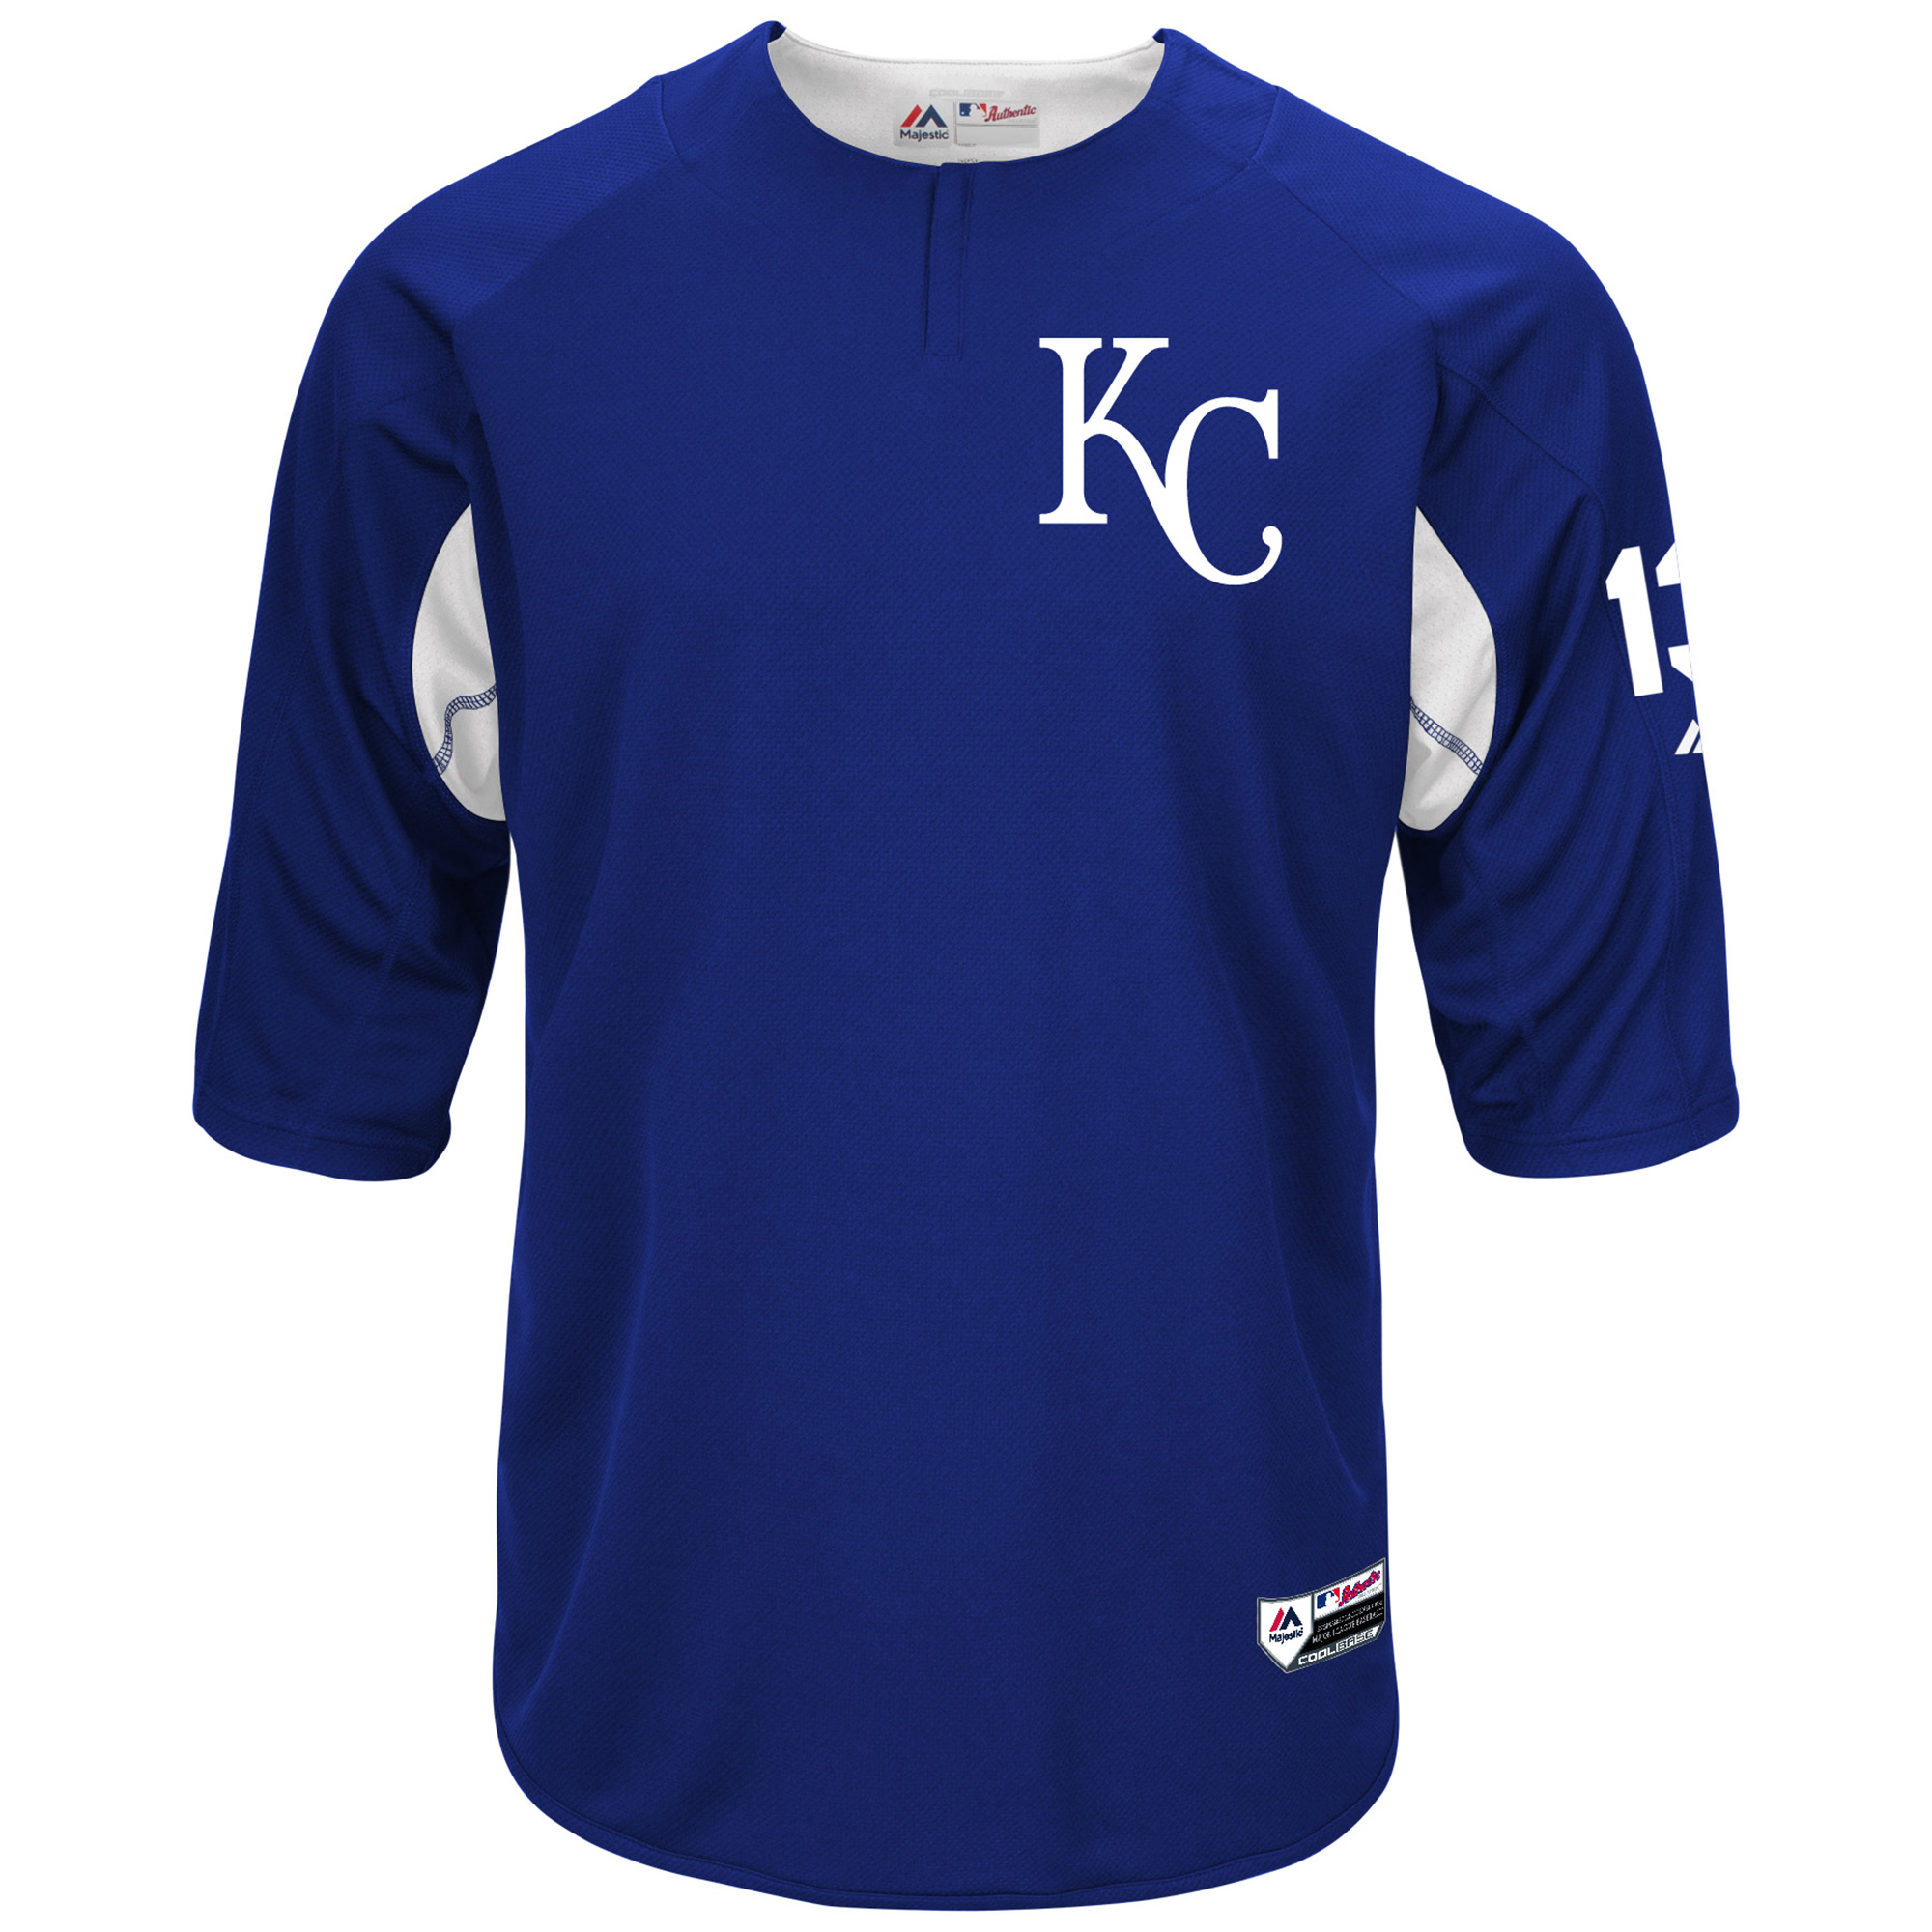 Salvador Perez Kansas City Royals Majestic Authentic Collection On-Field 3/4-Sleeve Player Batting Practice Jersey - Royal/White